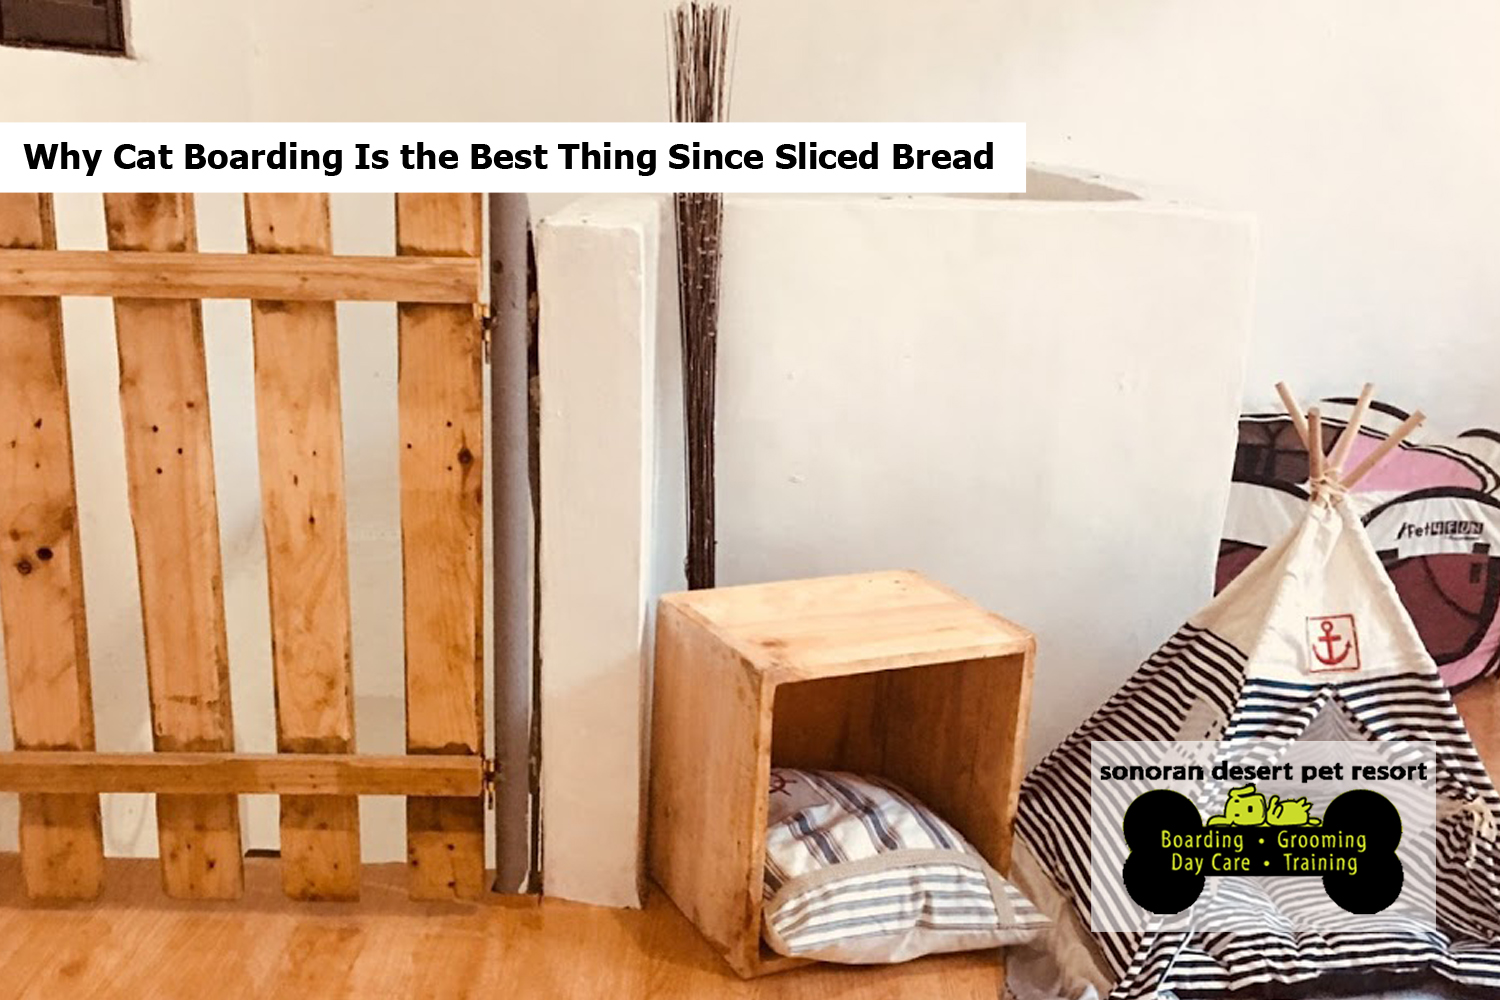 Why Cat Boarding Is the Best Thing Since Sliced Bread